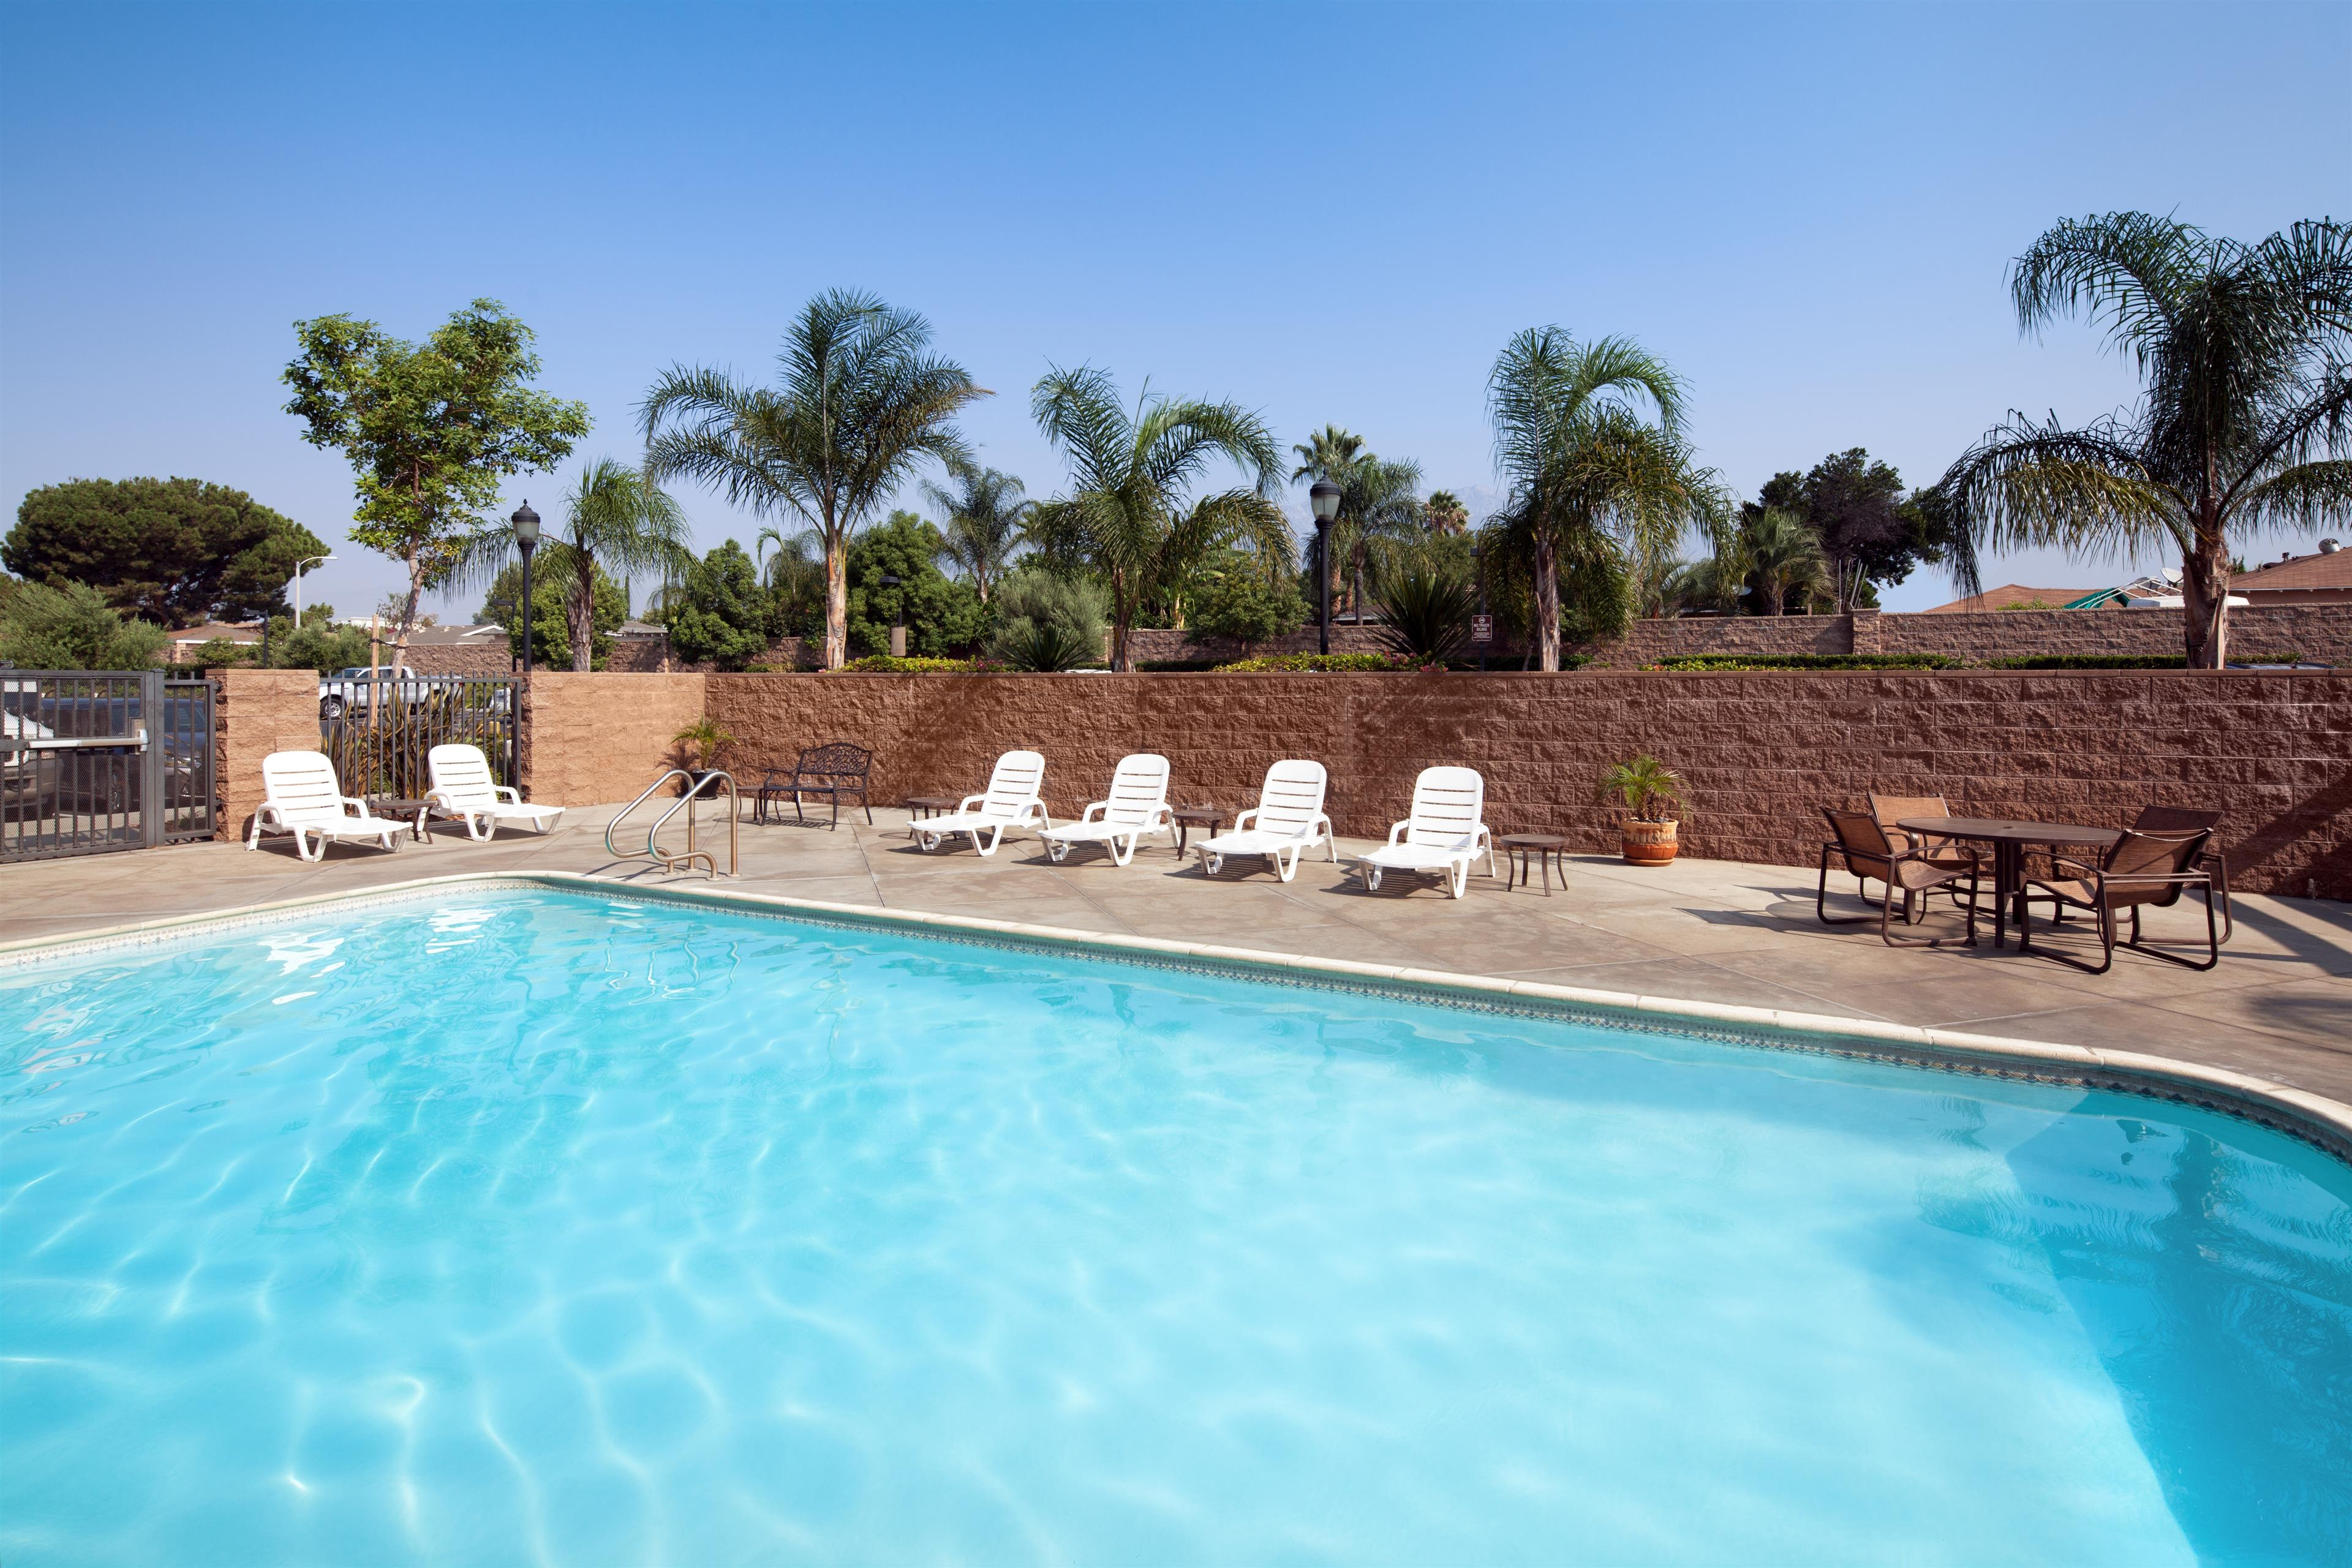 Hotel Rooms In Rancho Cucamonga Ca